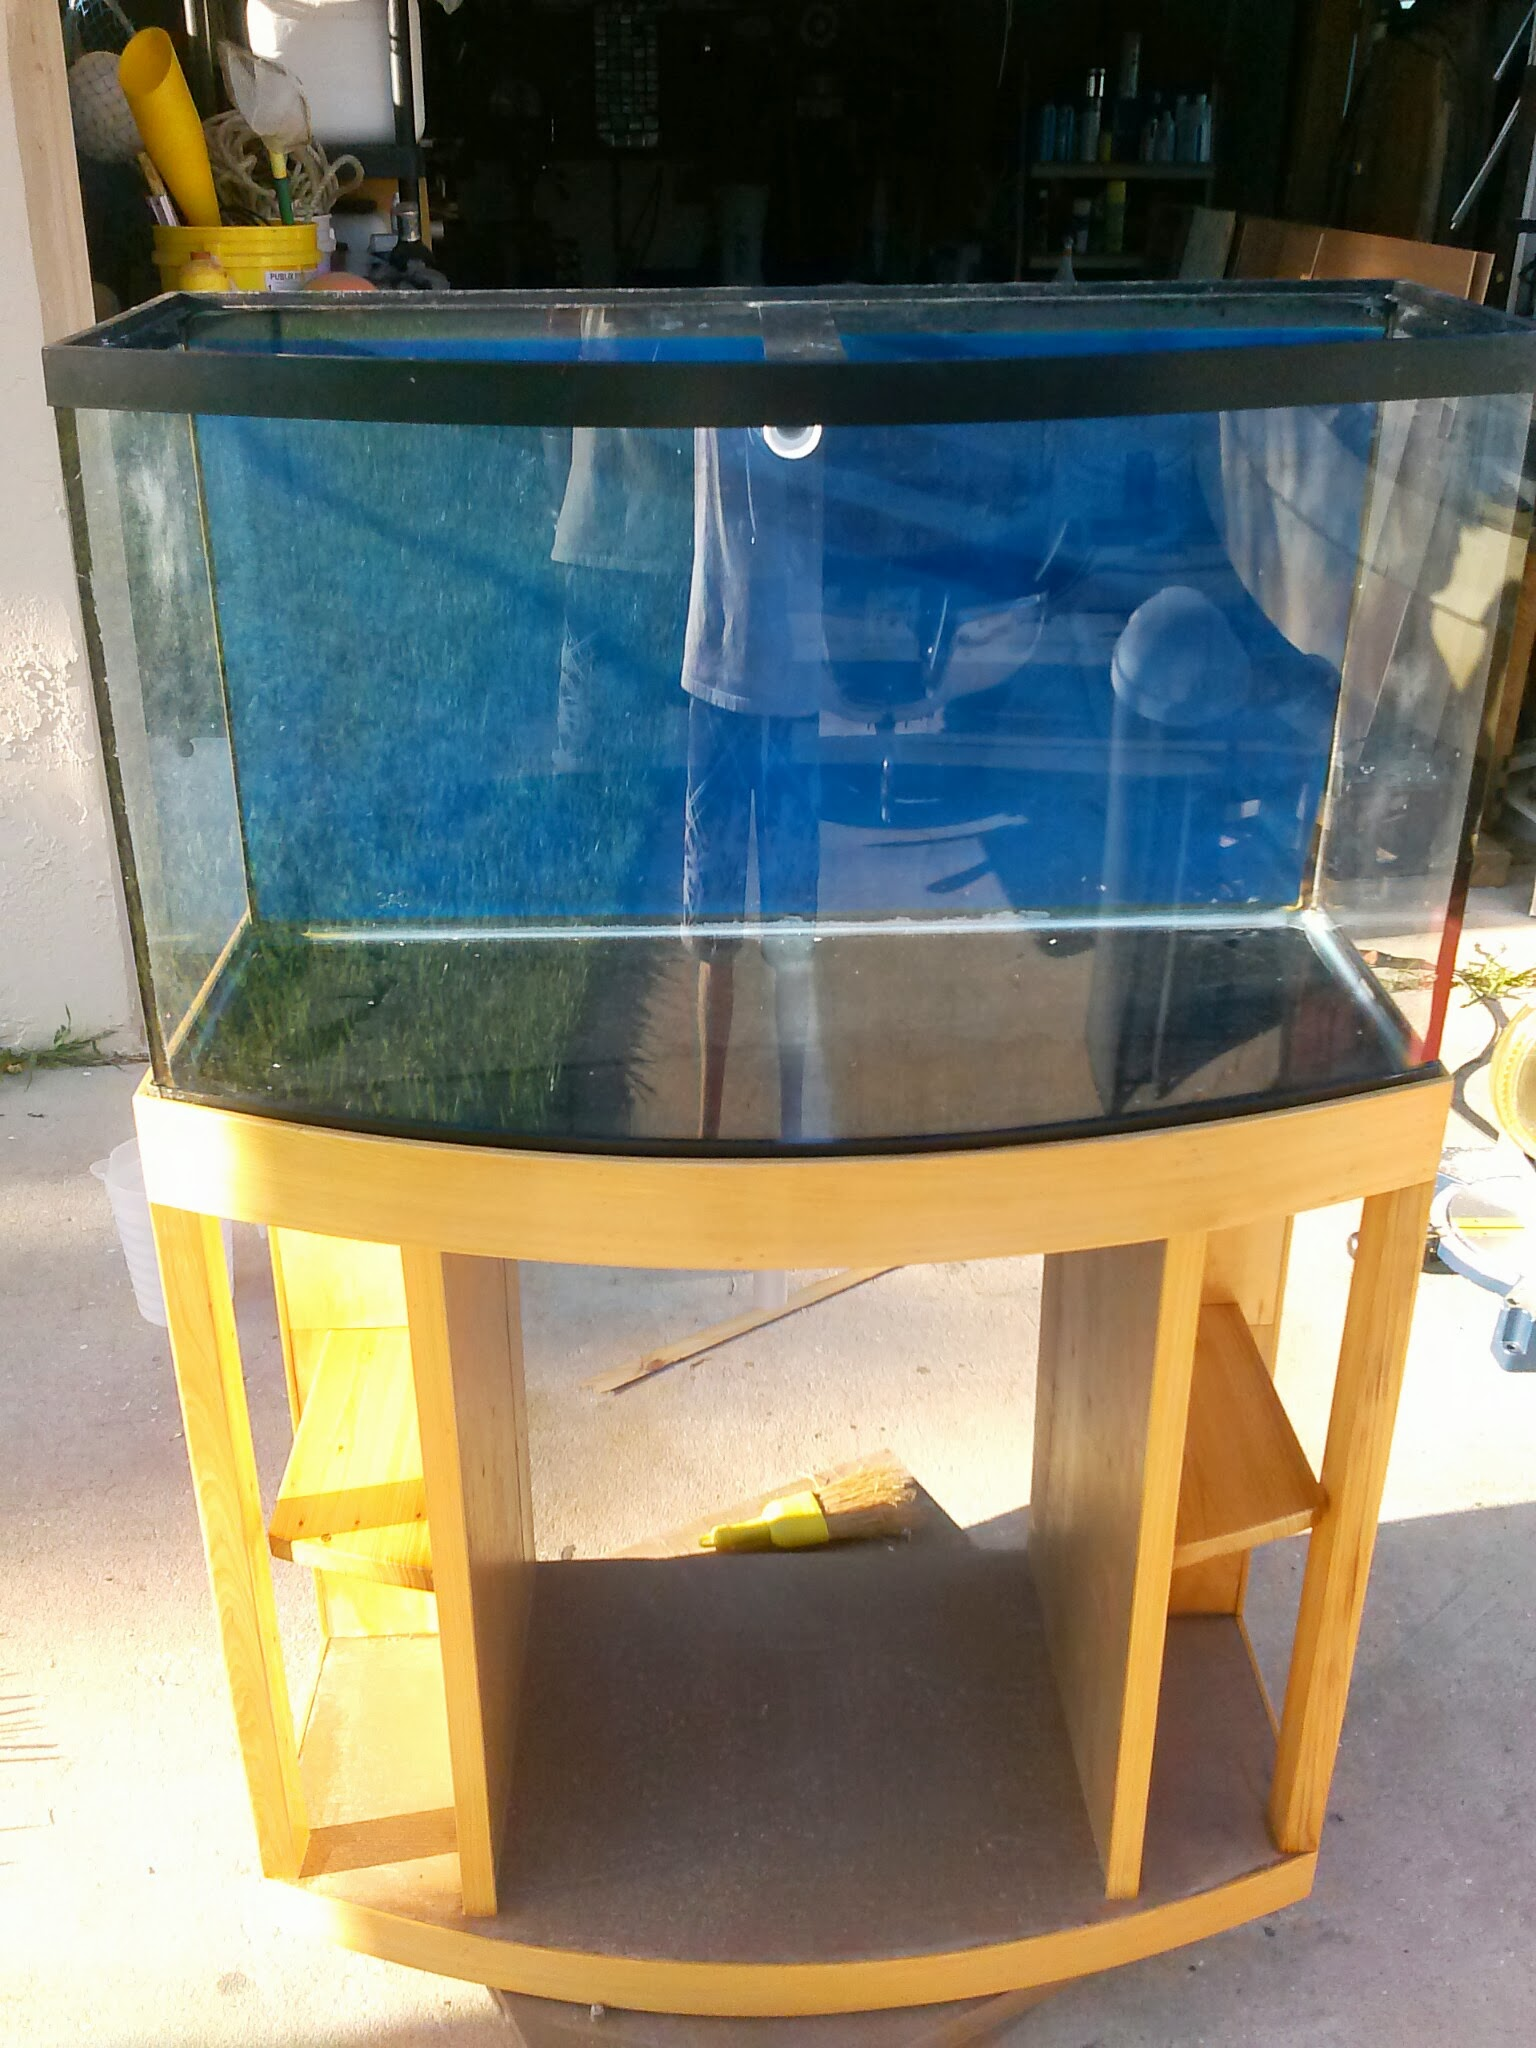 Tank fits great planet hernando diy projects for Bow front fish tank